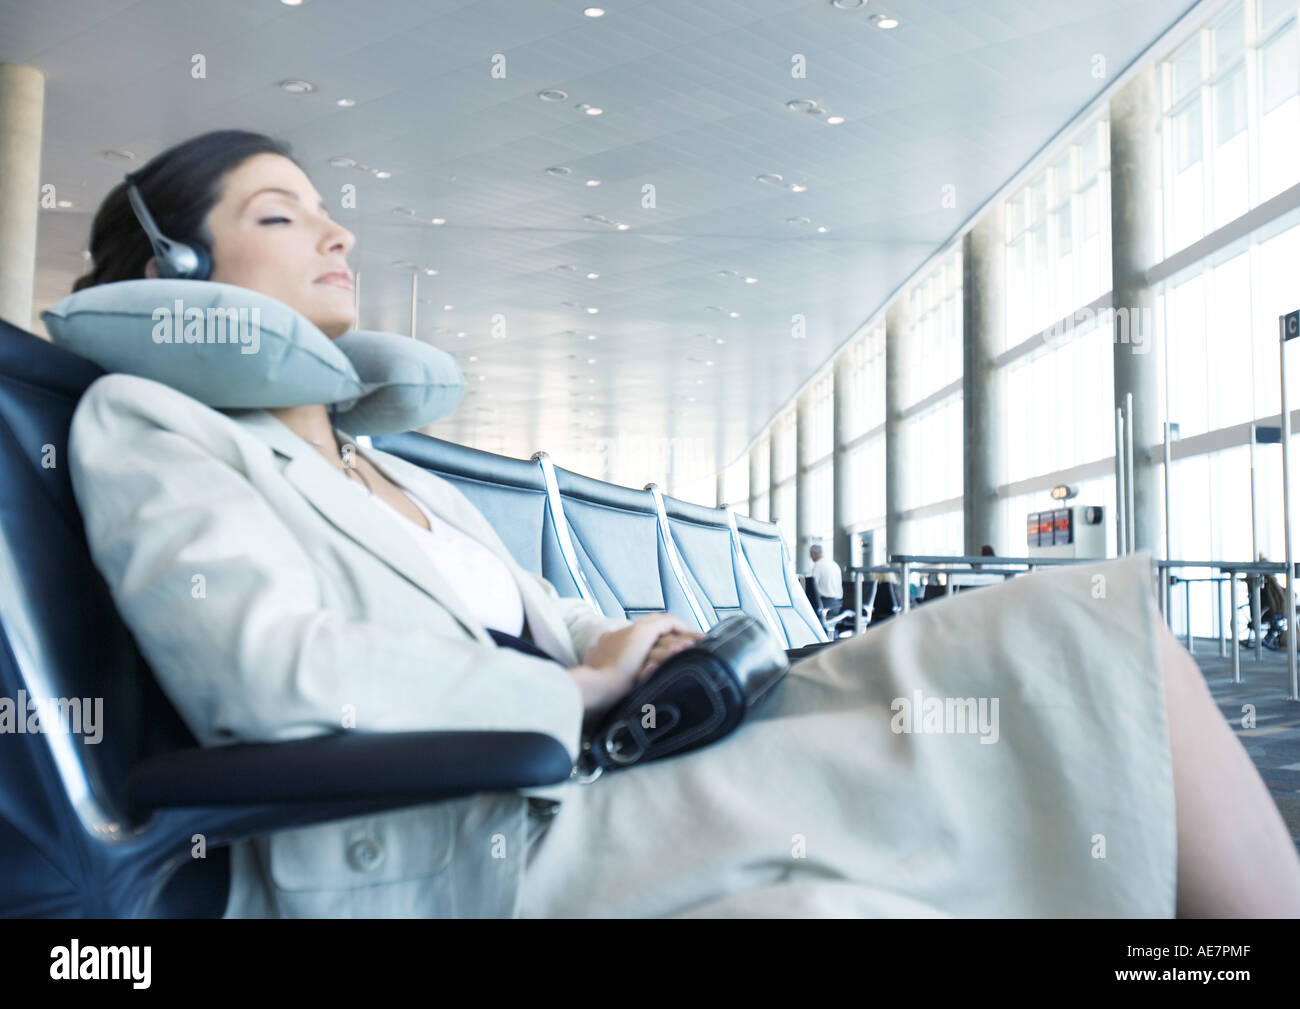 Business traveler sitting in airport lounge, napping with neck pillow - Stock Image